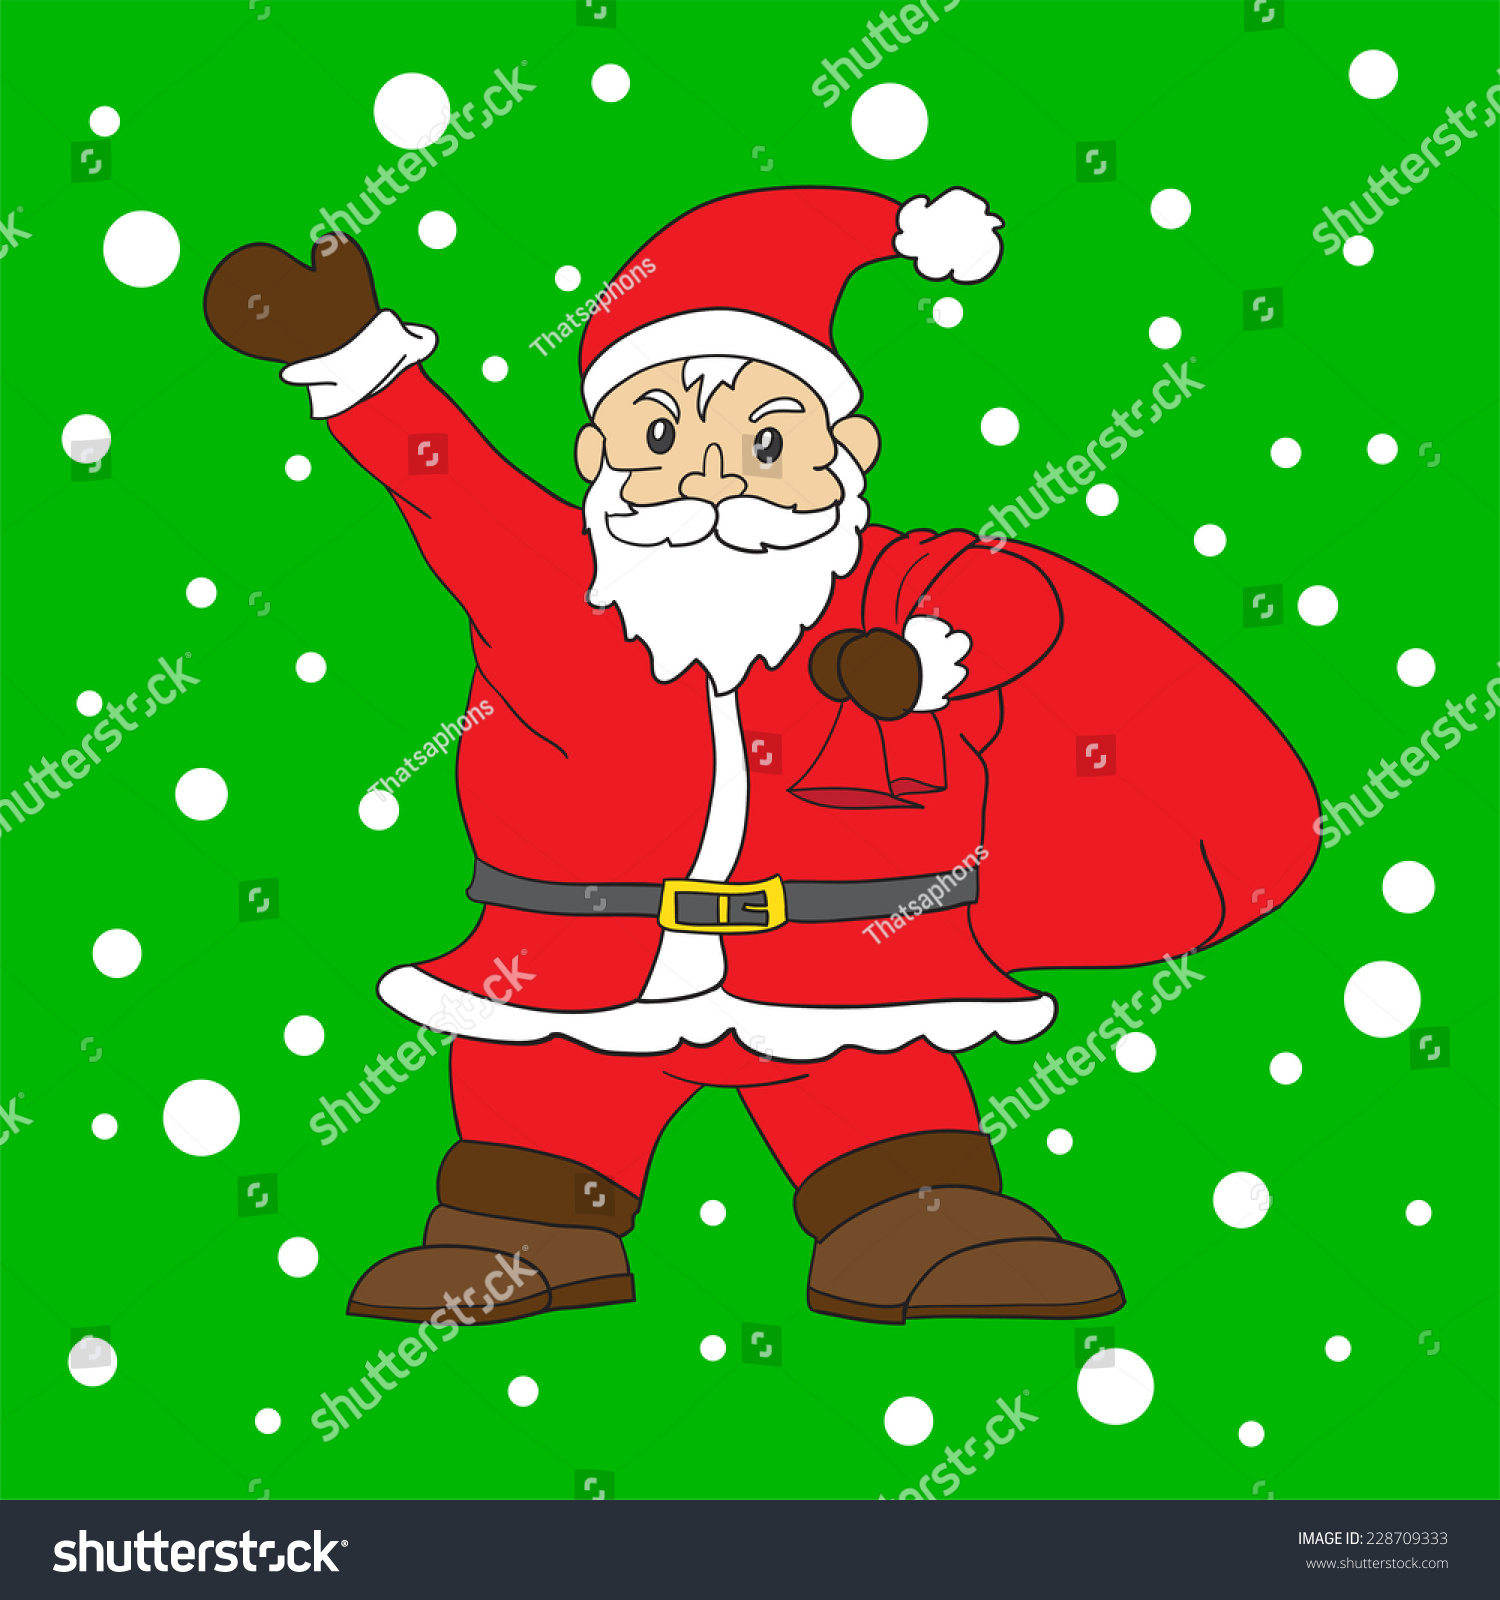 Santa Clauswith Snow Background Christmass Day Stock Vector (Royalty ...